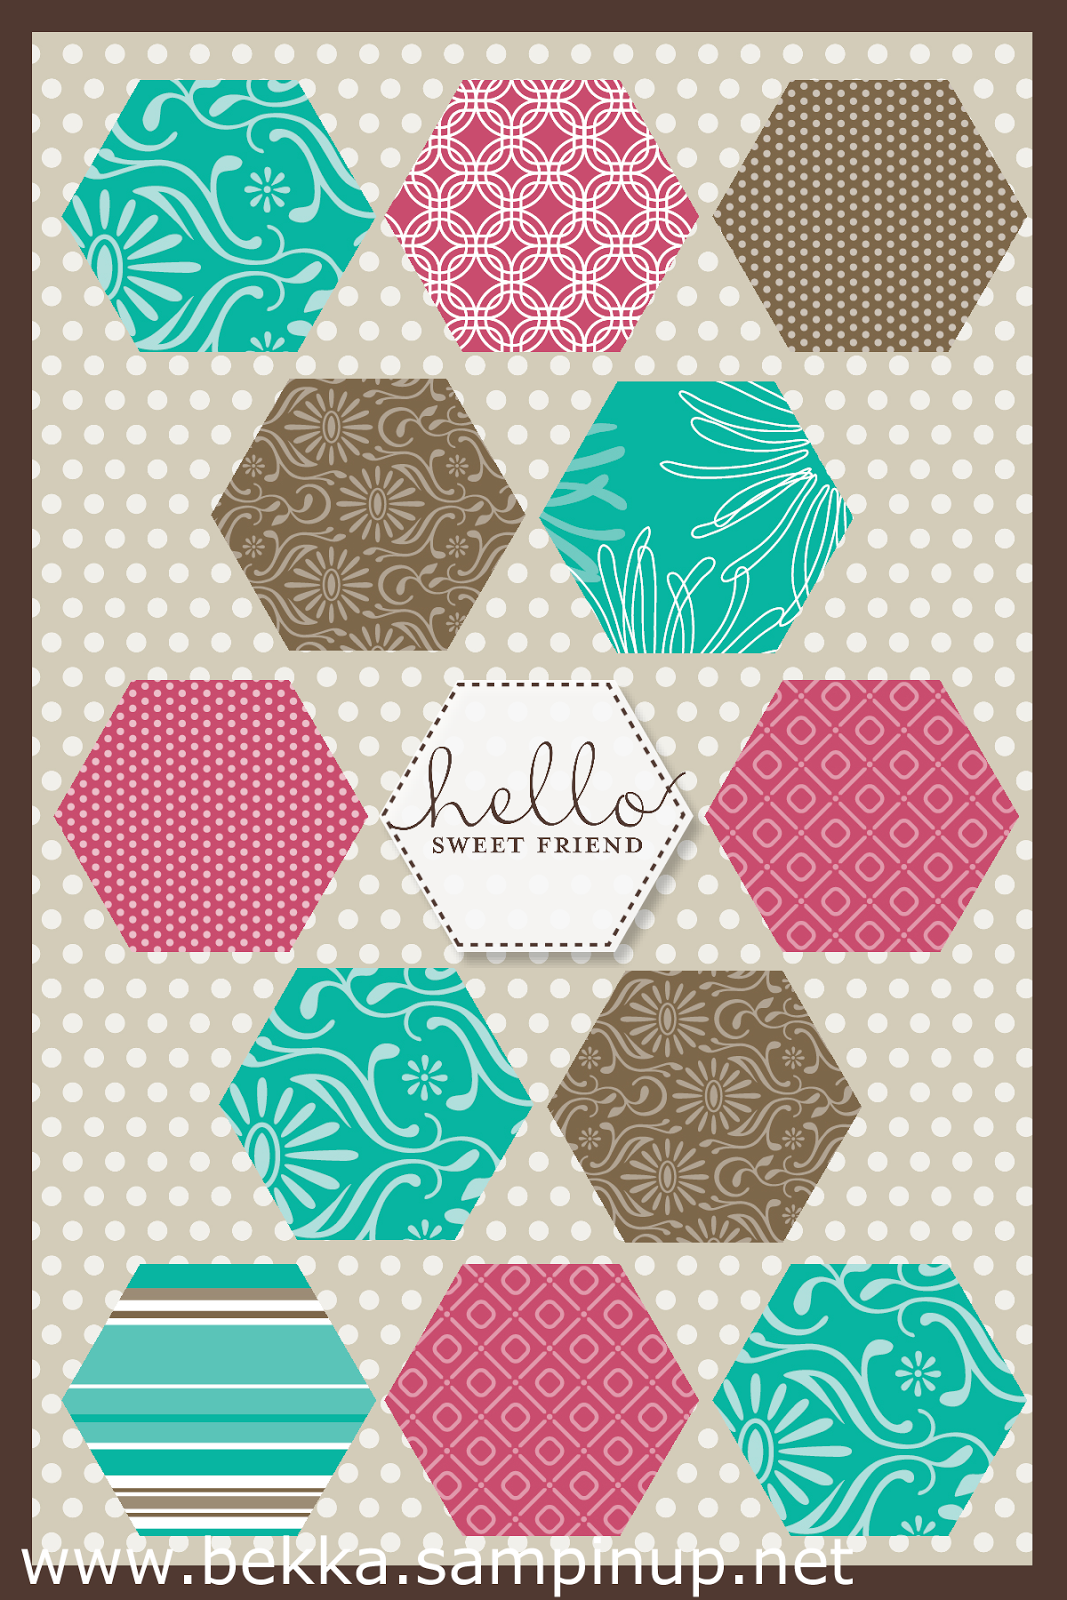 Hexagon Fun with My Digital Studio - check out this UK Stampin' Up! Independent Demo Blog every Monday for Digital Ideas